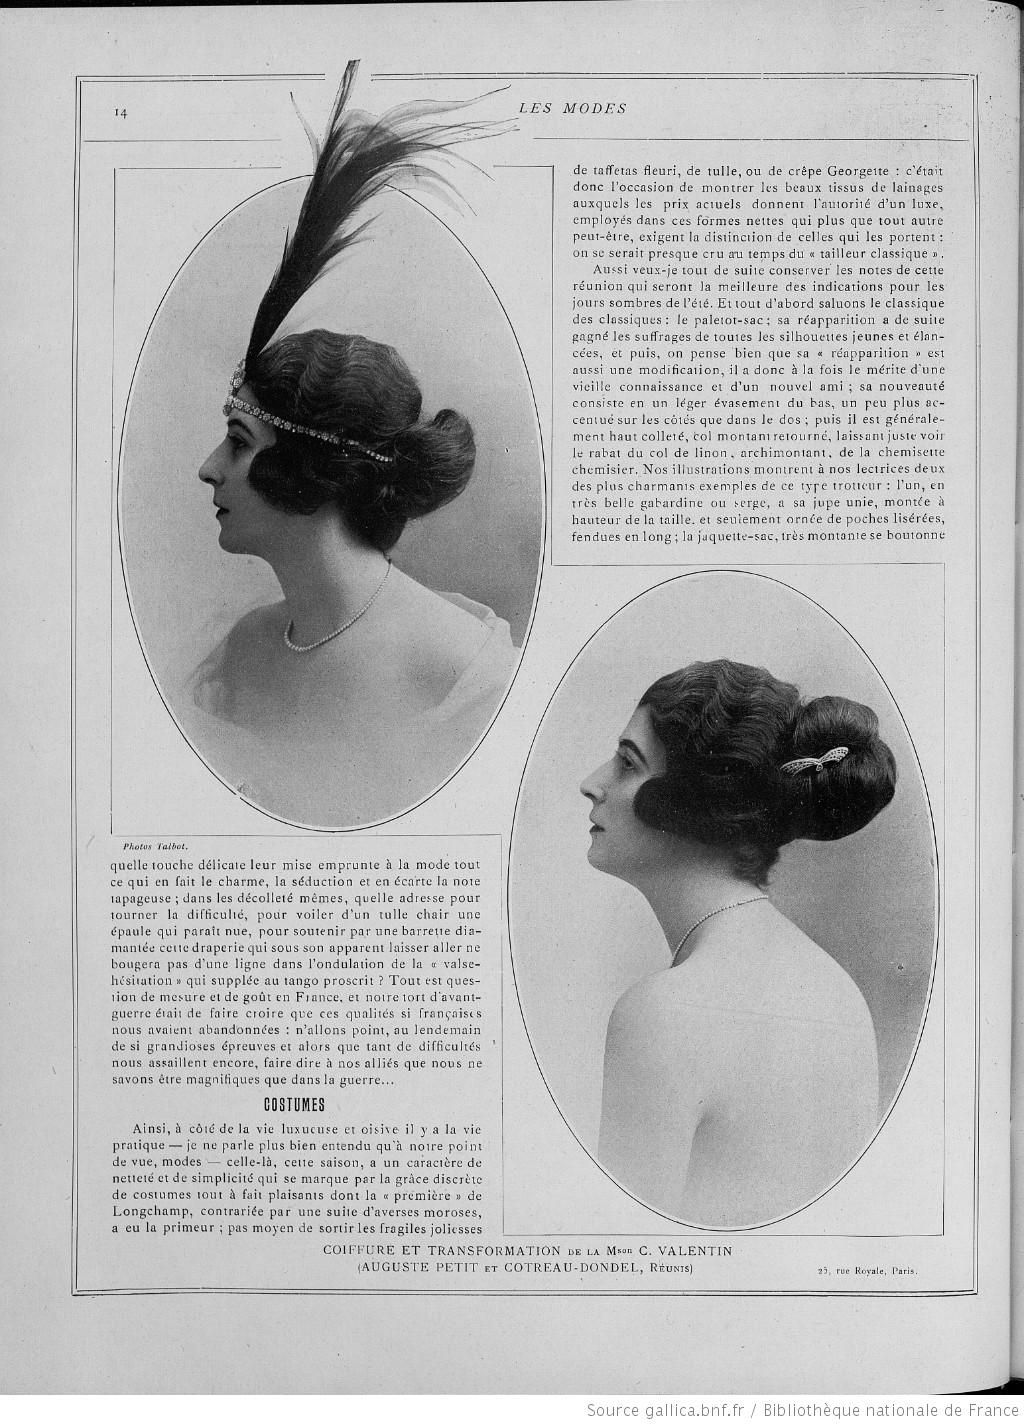 Les Modes Paris 1920 Coiffure Et Transformation Hairstyle With False Hair Affichevacances Traveling By Yourself 1920s Hair Coiffure